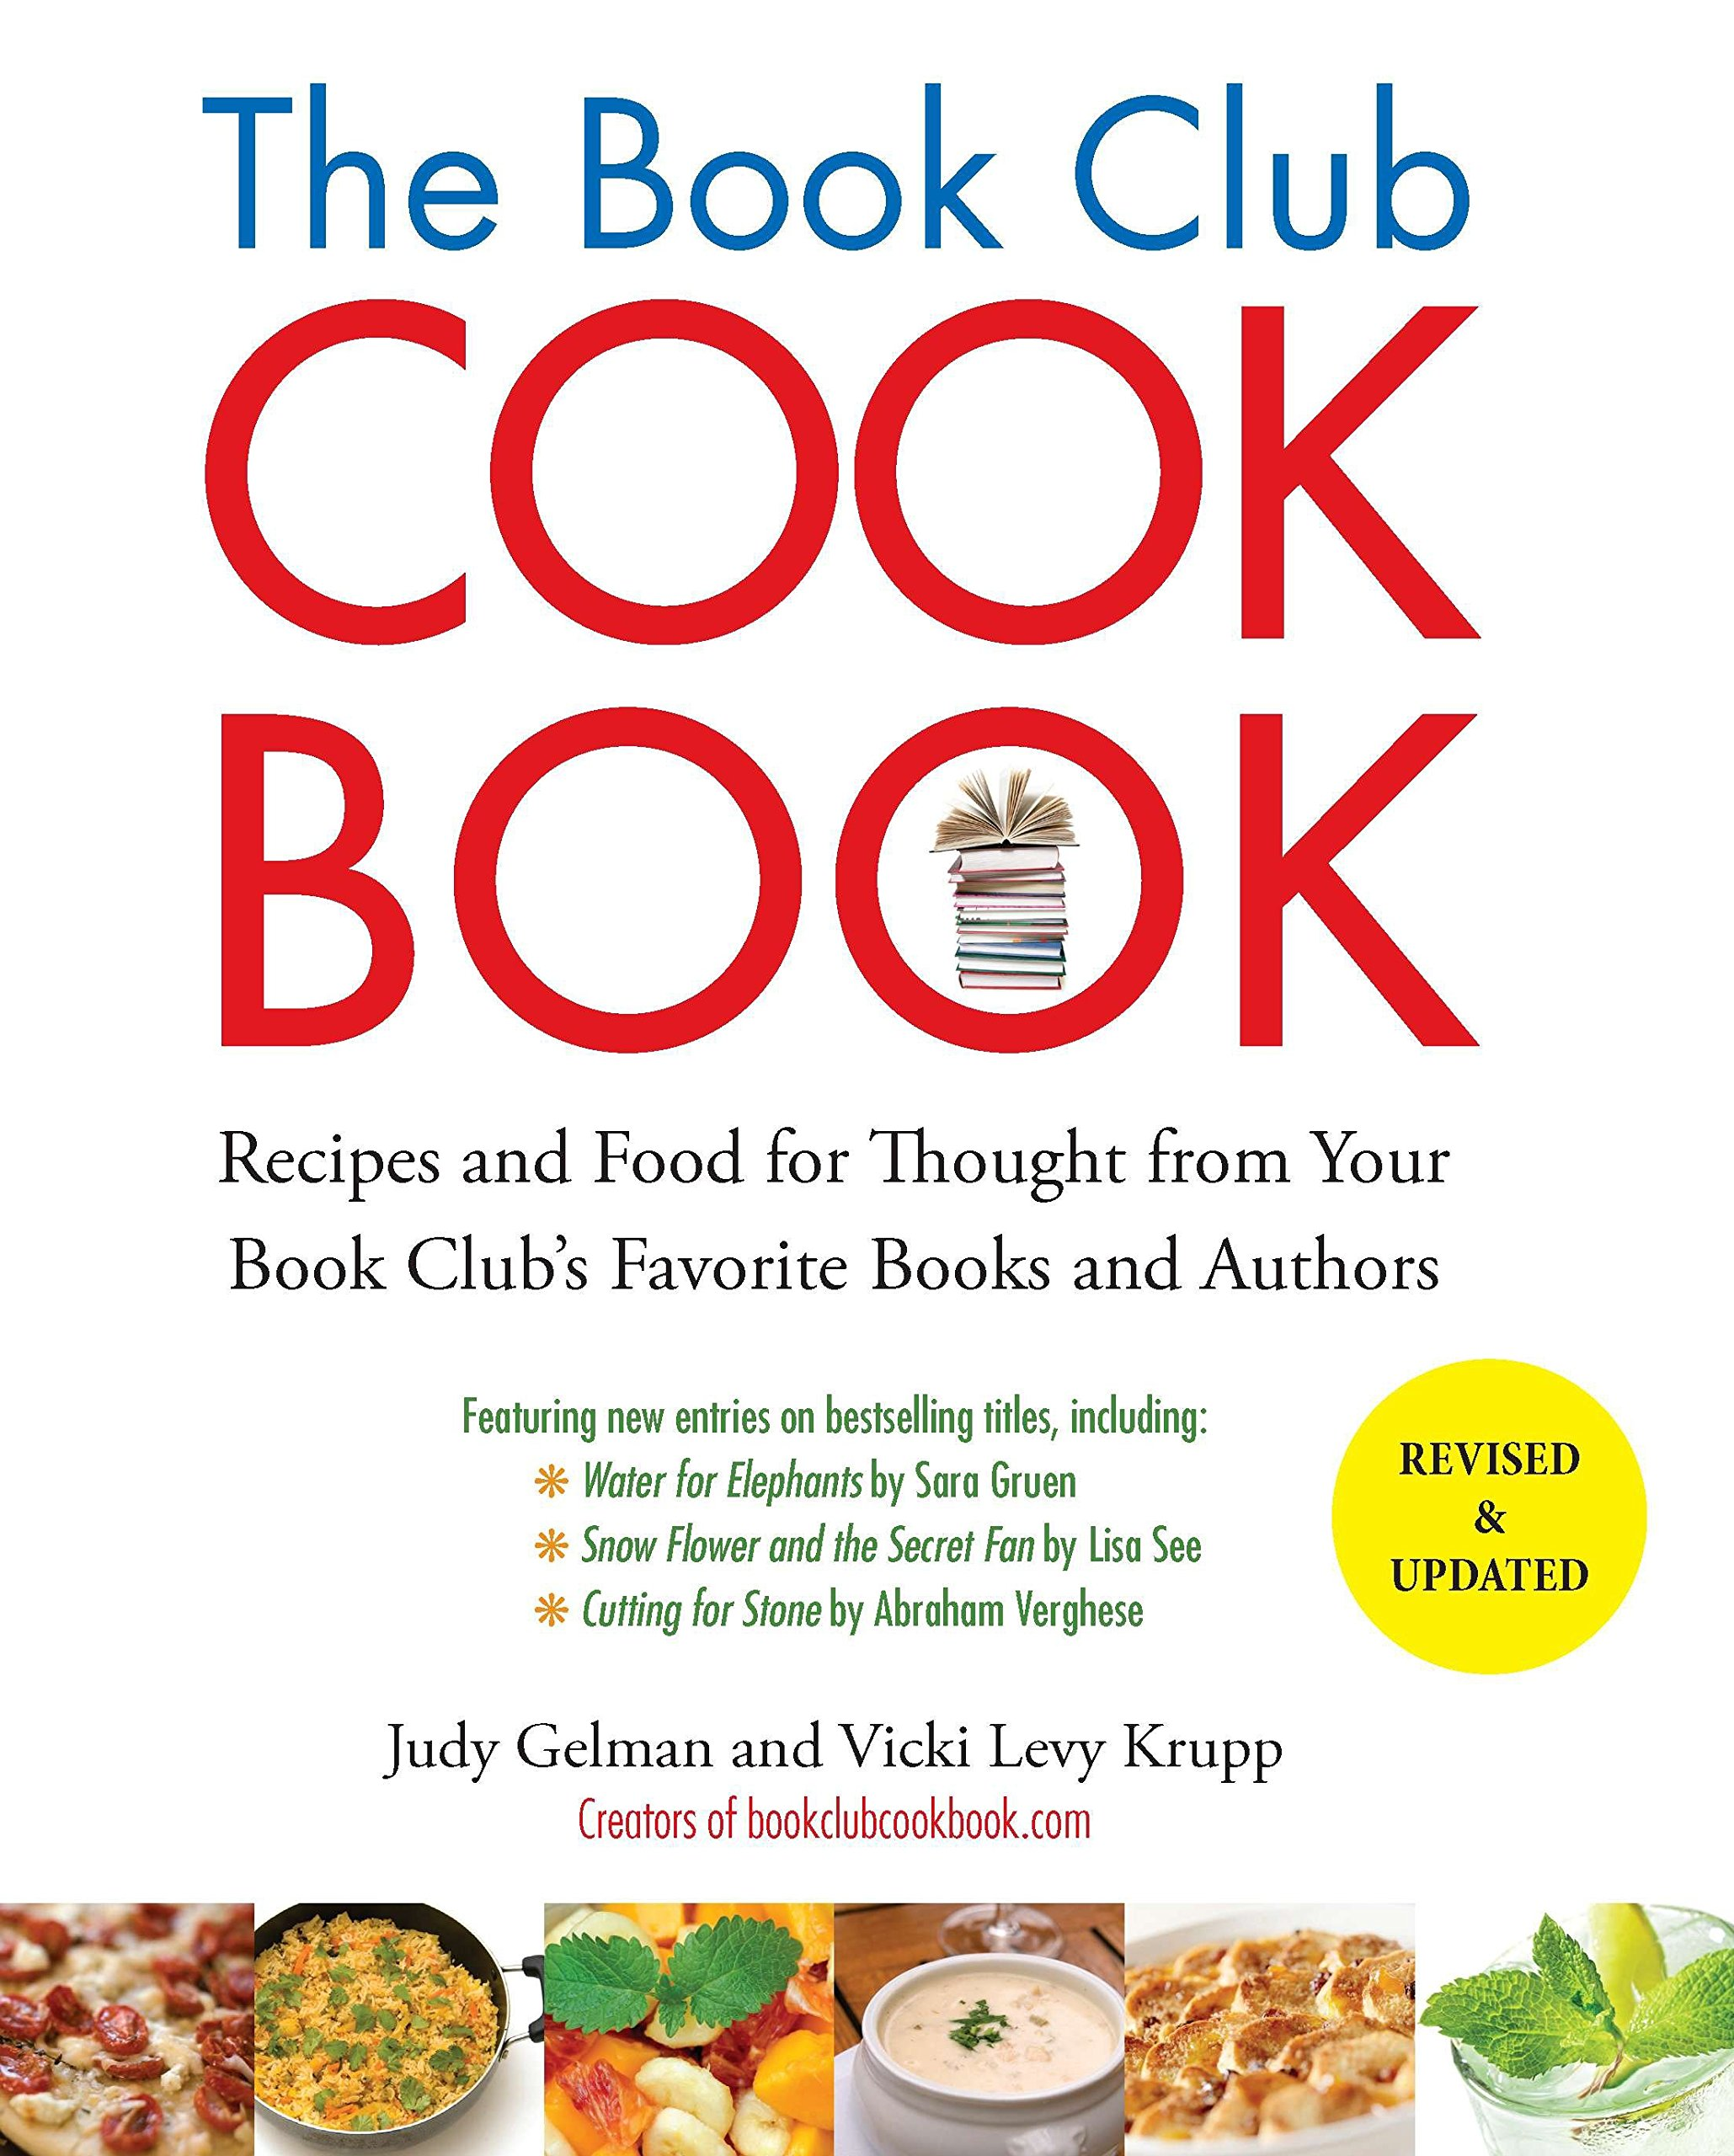 The Book Club Cookbook, Revised Edition: Recipes and Food for Thought from Your Book Club's FavoriteBooks and Authors by Tarcher